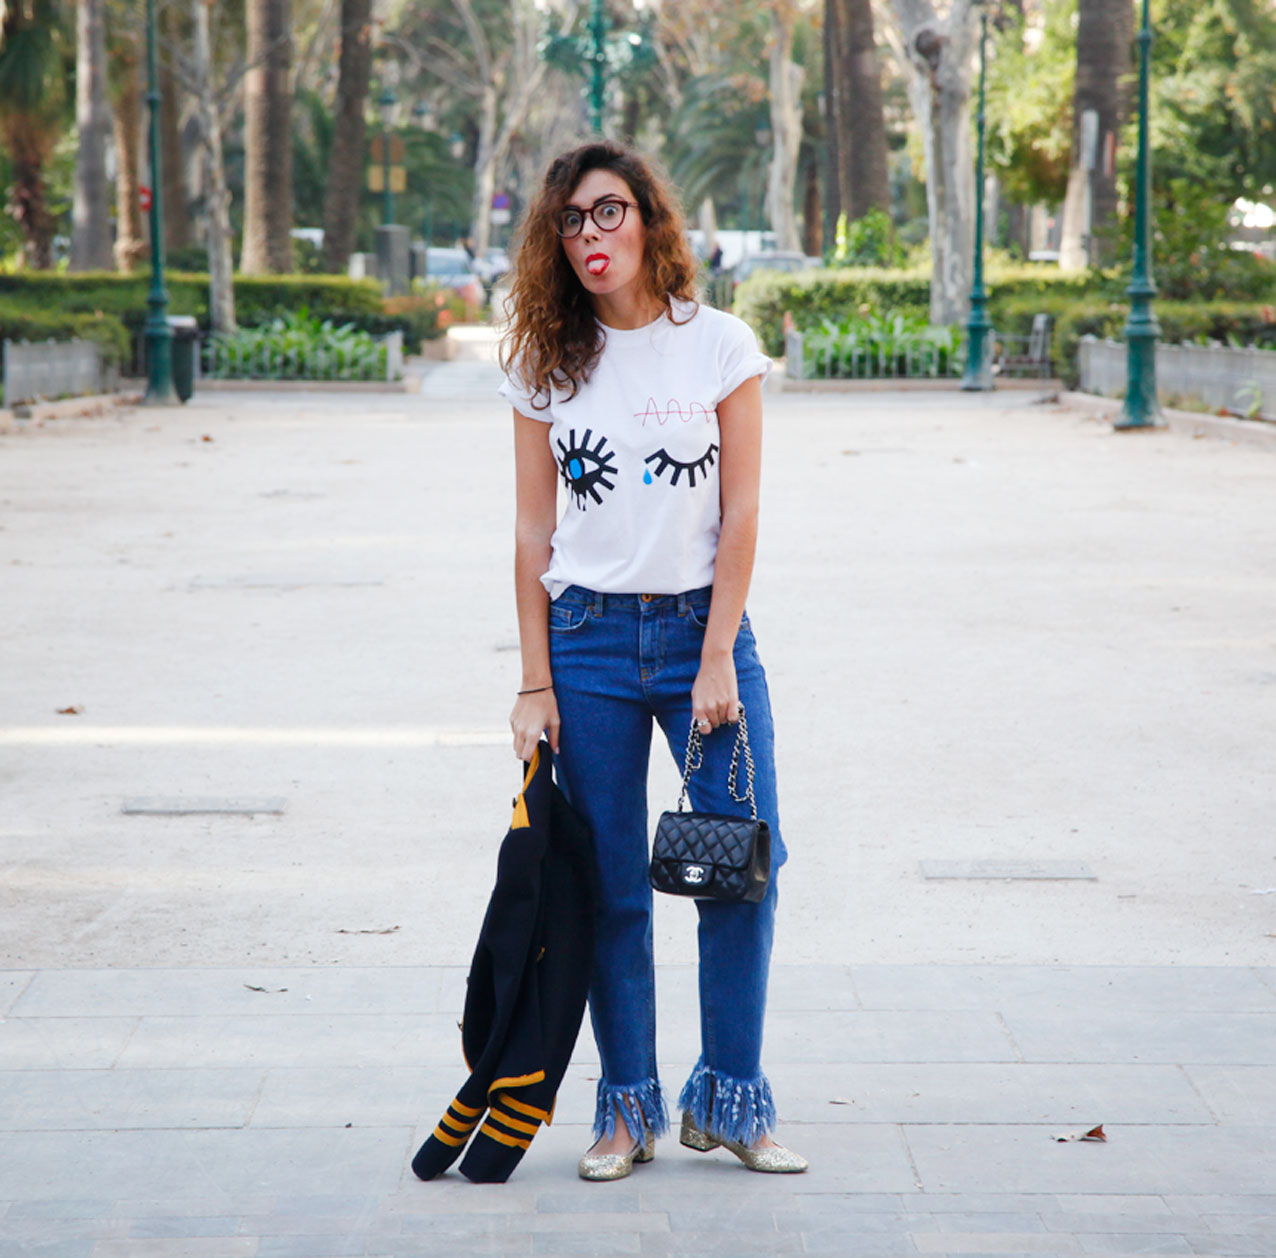 militar jacket-strippes_the-fab-glasses_frayed-jeans-Streestyle-cool-lemonade